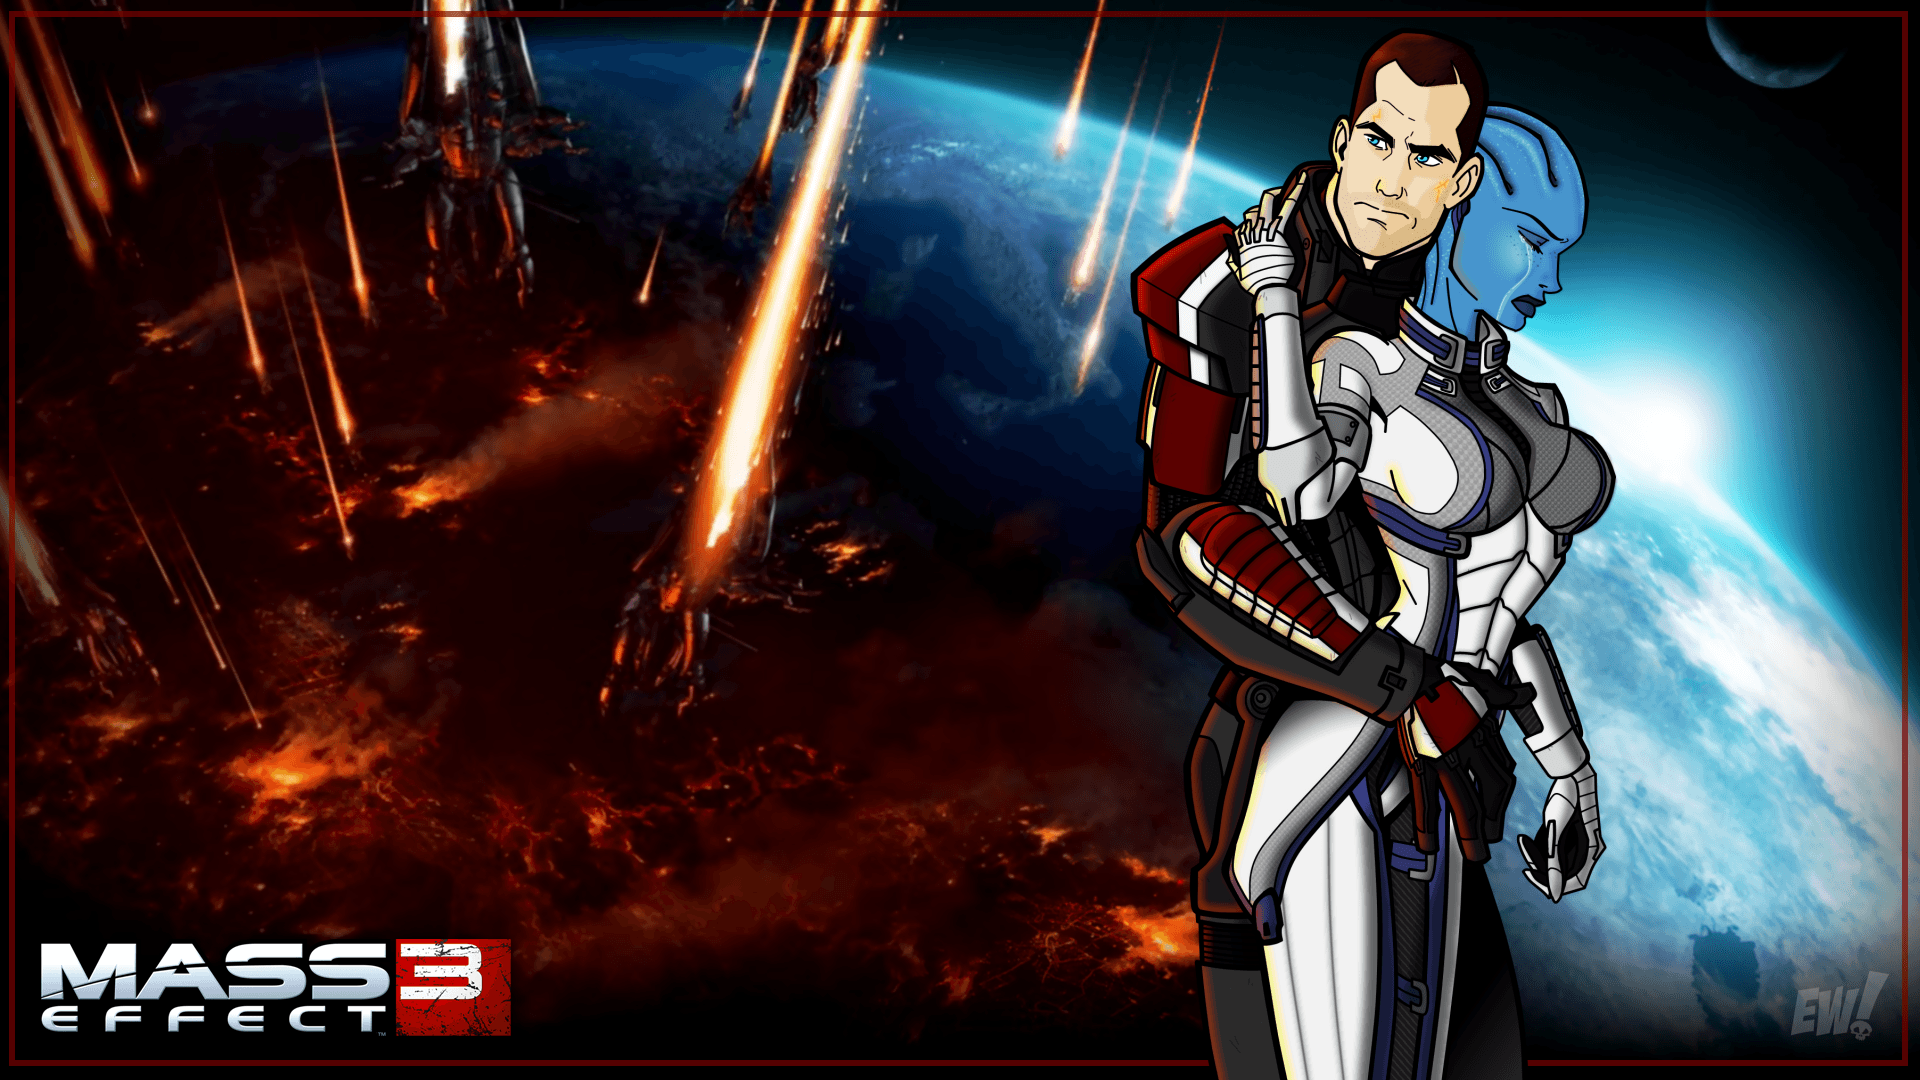 Mass Effect 3 Wallpaper 4k Posted By Michelle Simpson